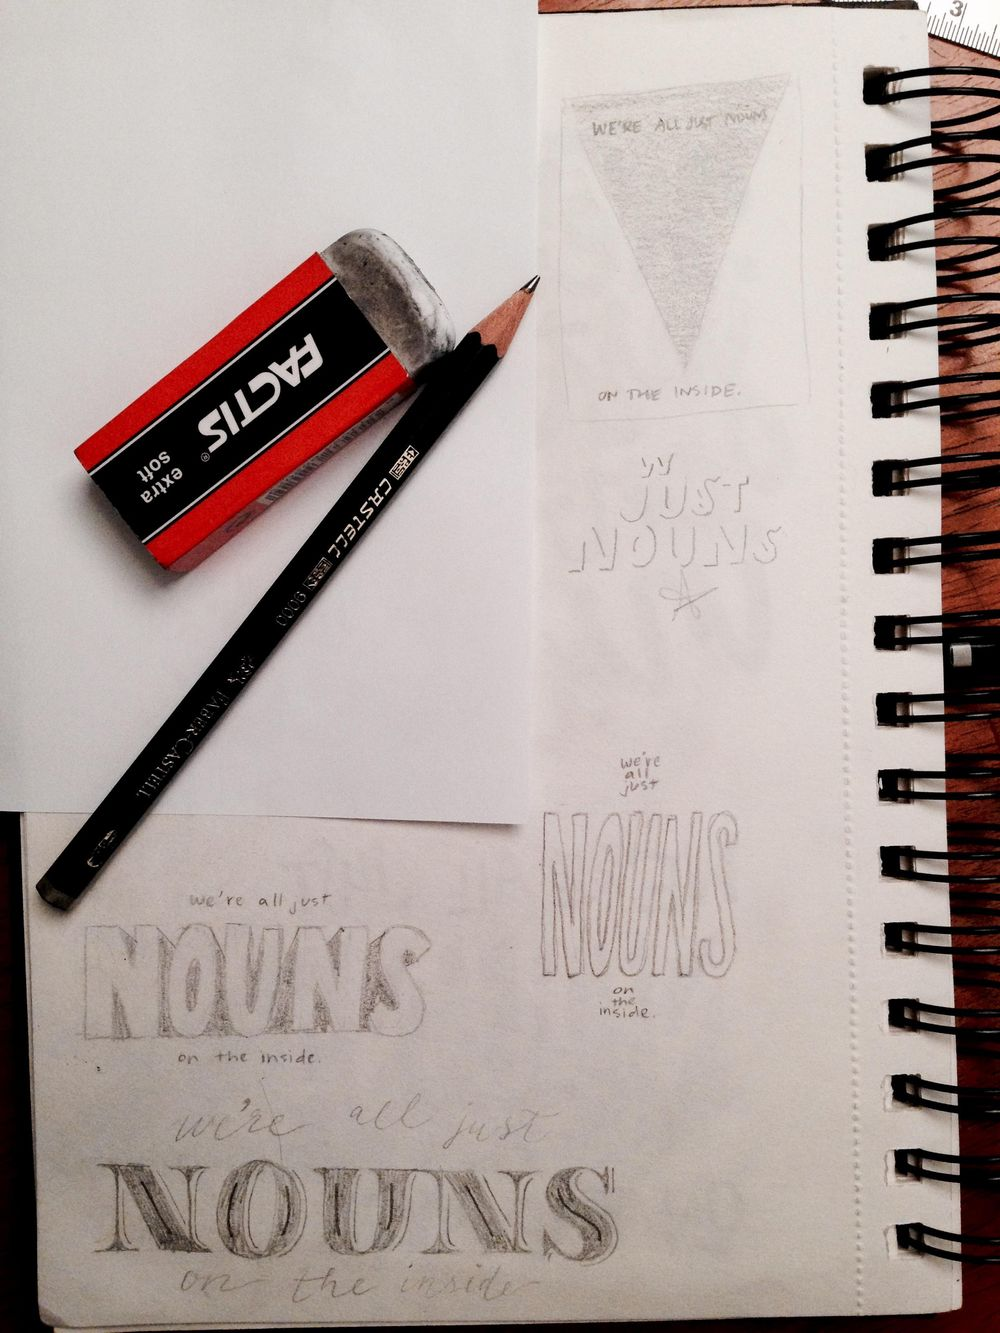 We're all just nouns on the inside. - image 6 - student project